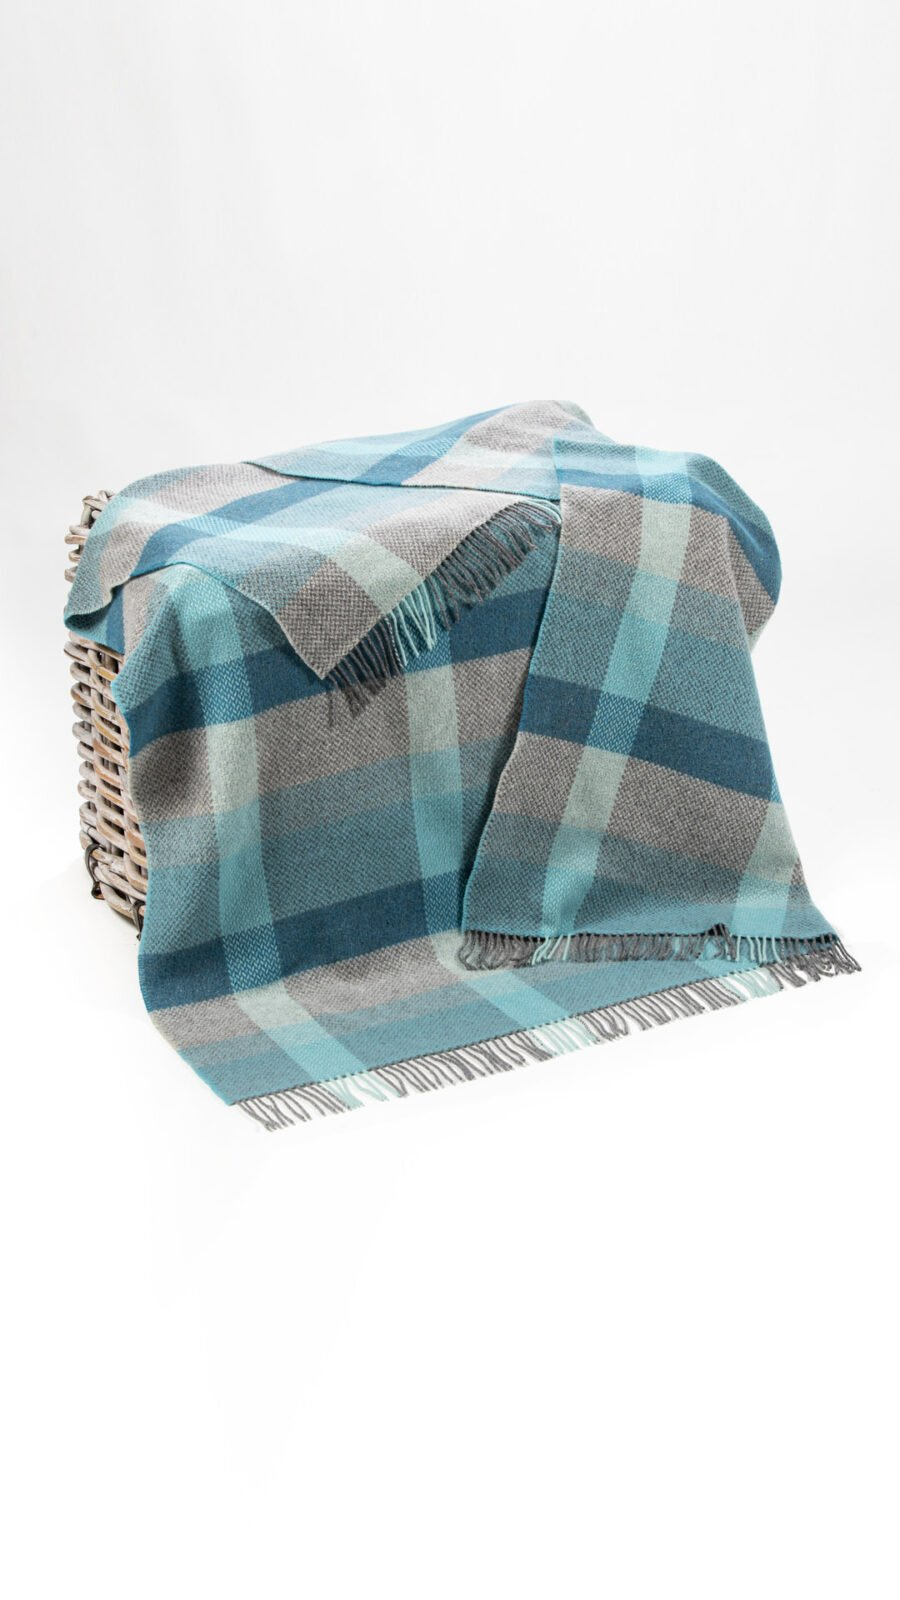 Blue and grey mix throw